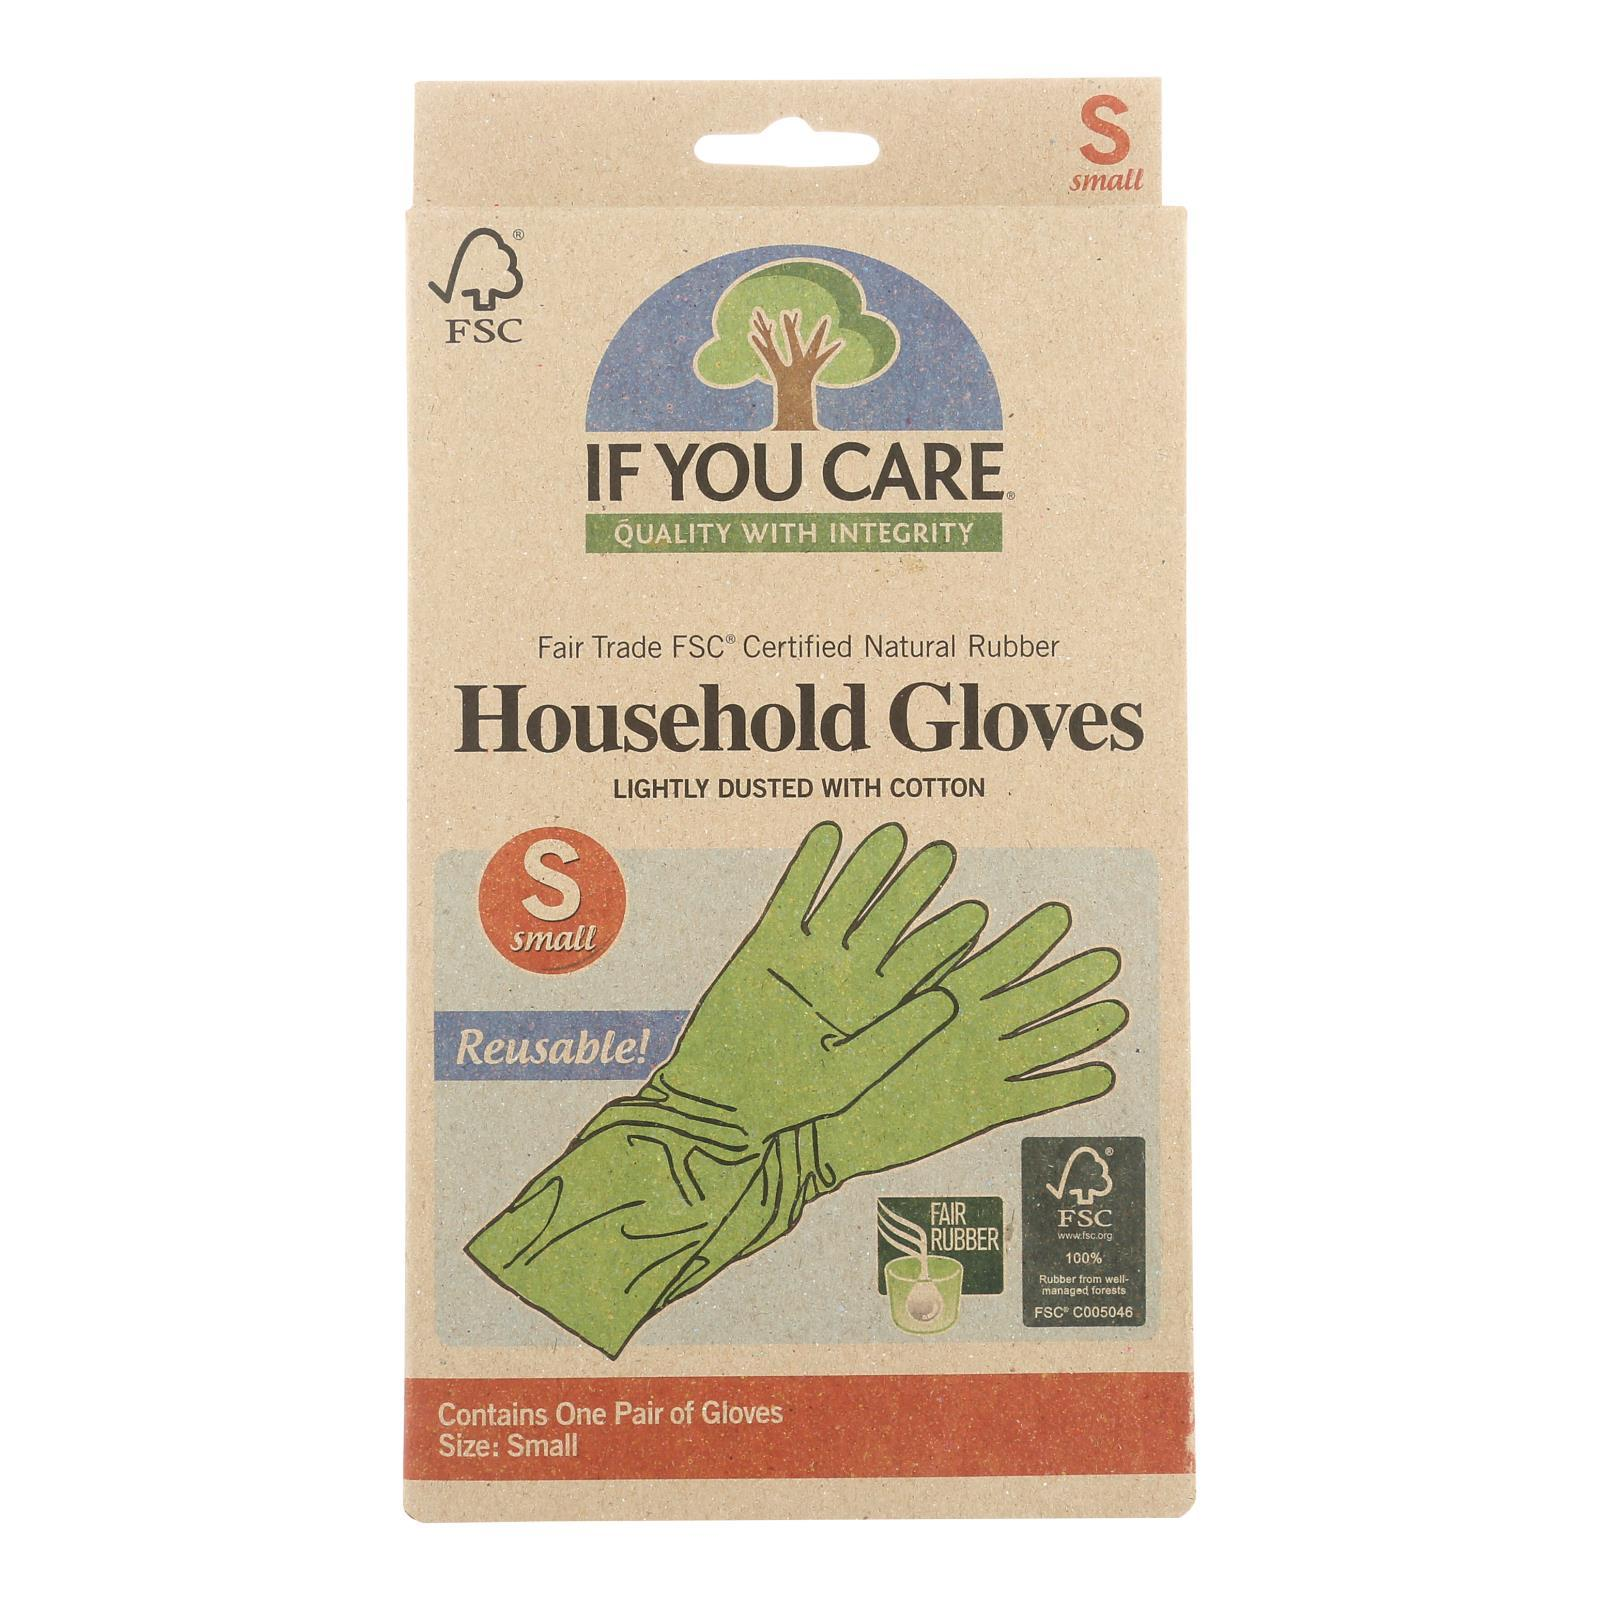 If You Care Household Gloves - Small - 1 Pair - BeeGreen